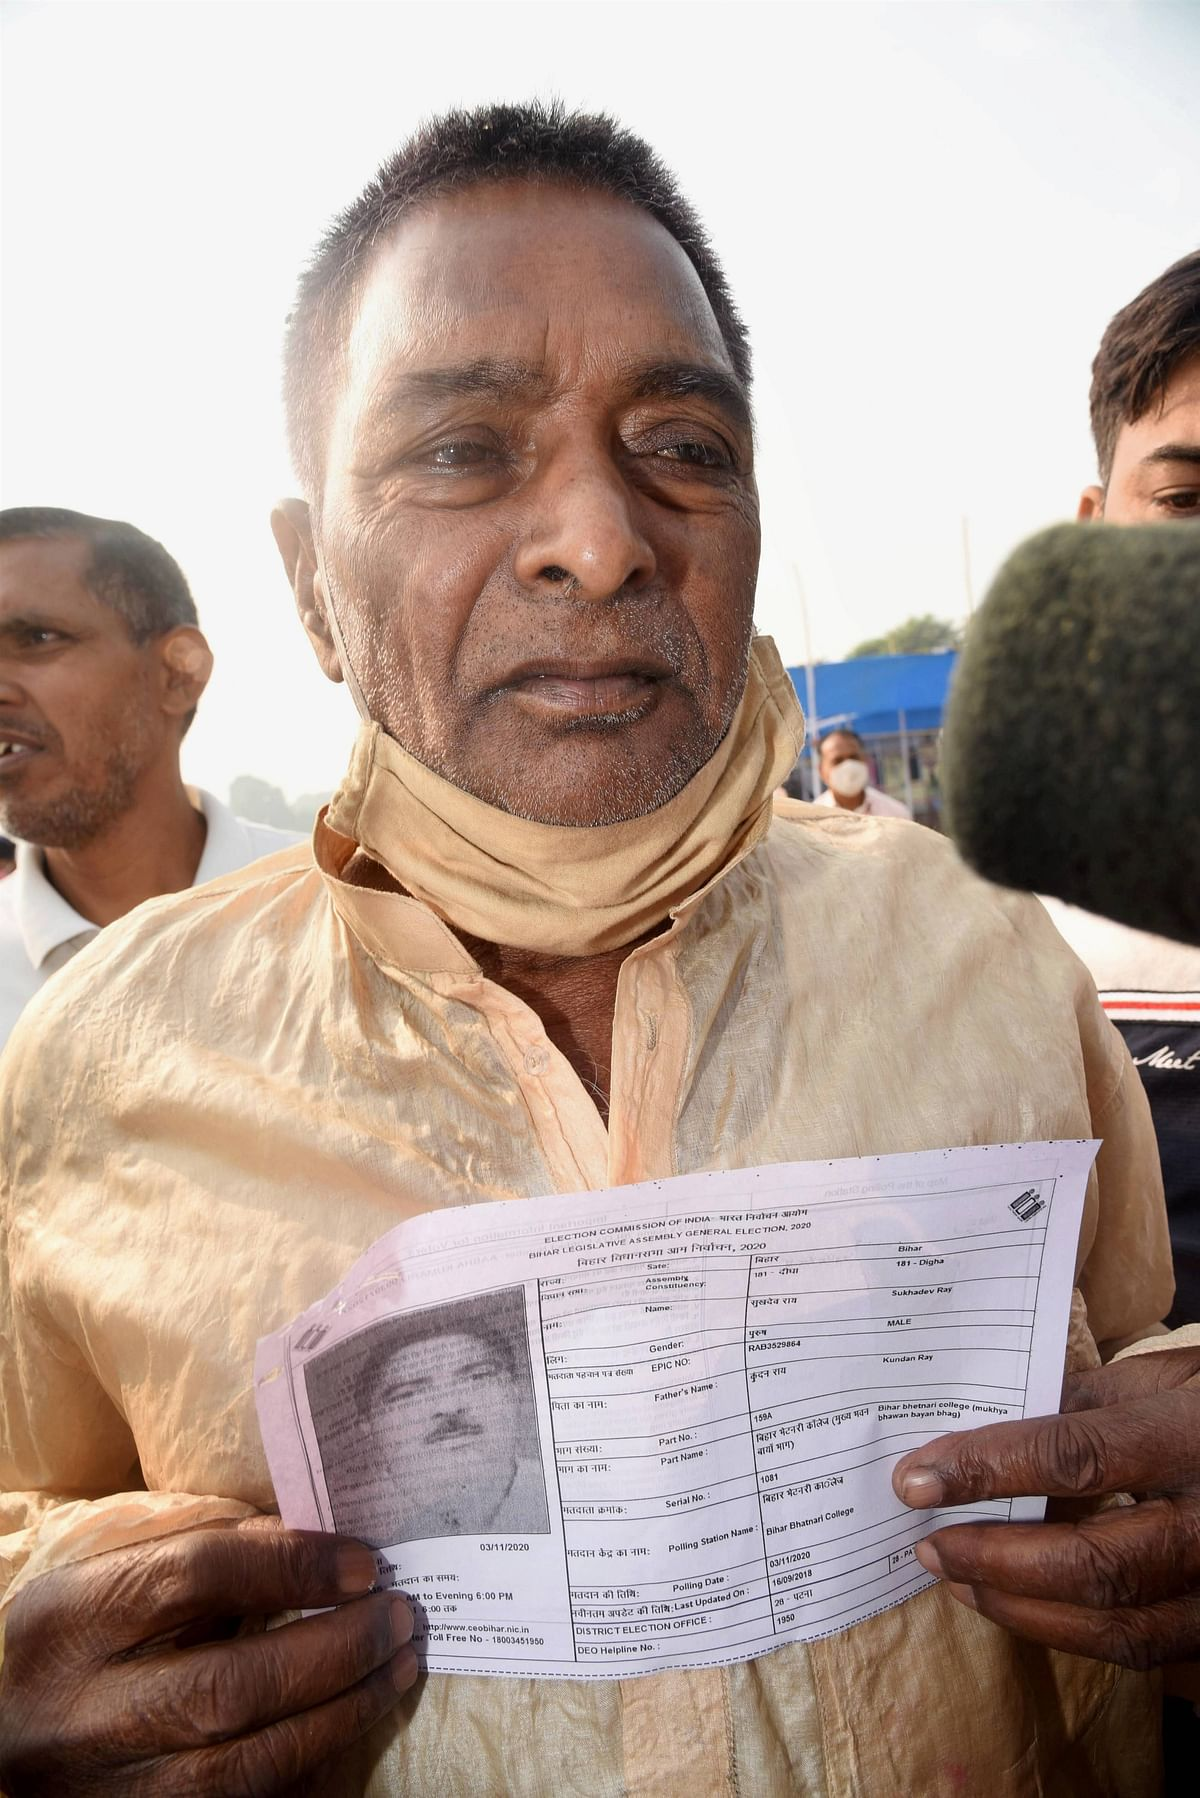 RJD Chief Lalu Prasad Yadavs brother Sukhdev Rai shows his ID after casting vote during the second phase of Bihar assembly polls.